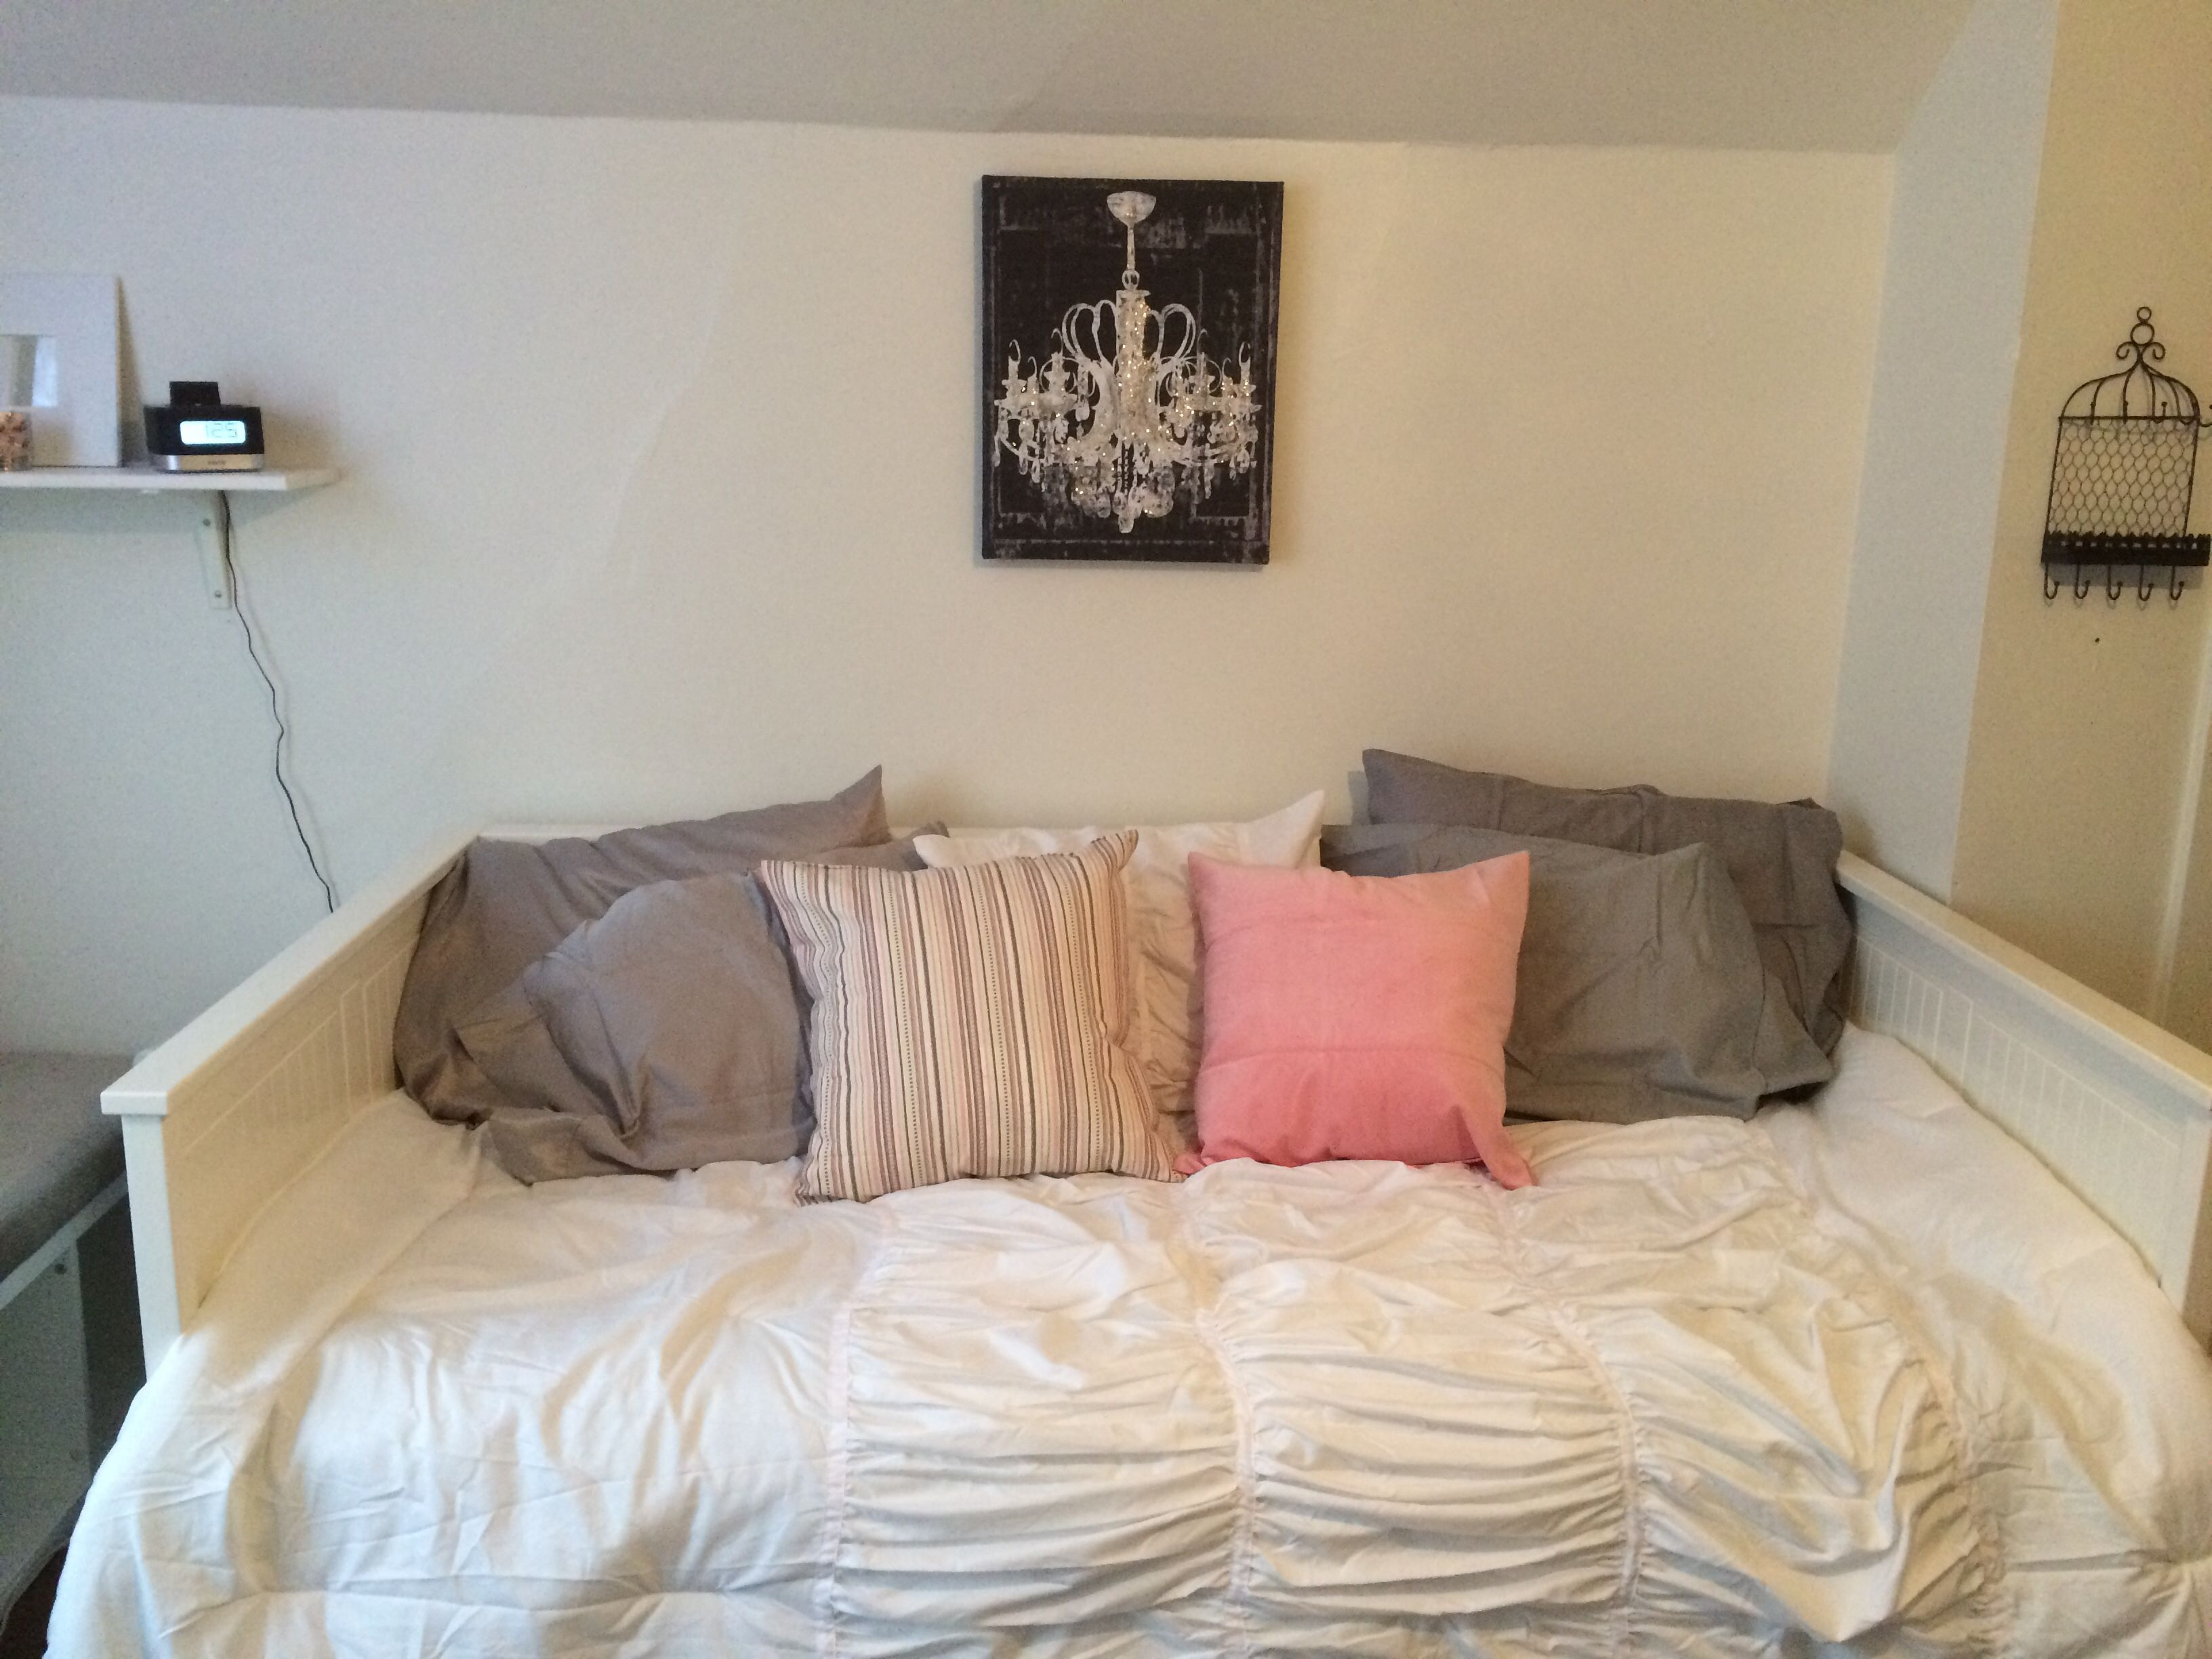 DIY my first room makeover Decorative Pillow covers